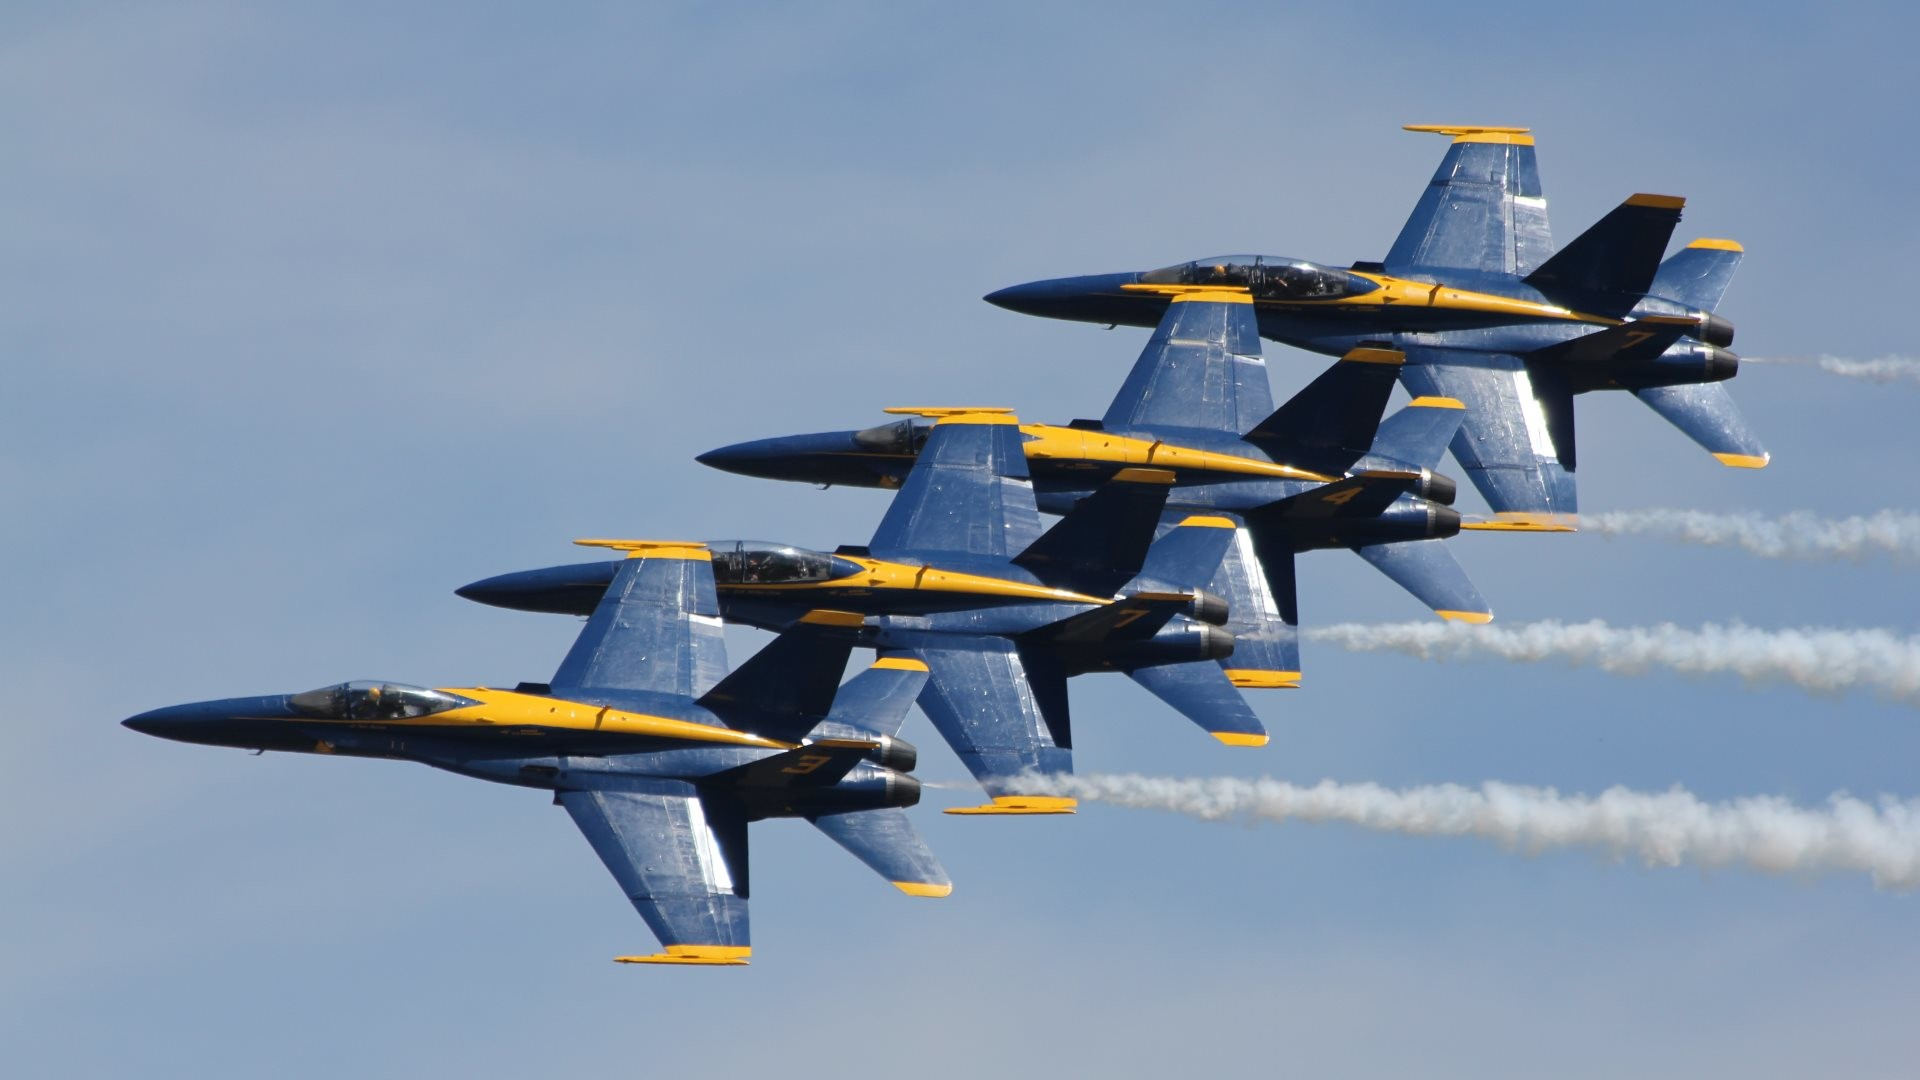 1920x1080 Blue Angels 0 HTML code. High Definition HD 1080p:  (fits on:  1600x900, 1366x768 .